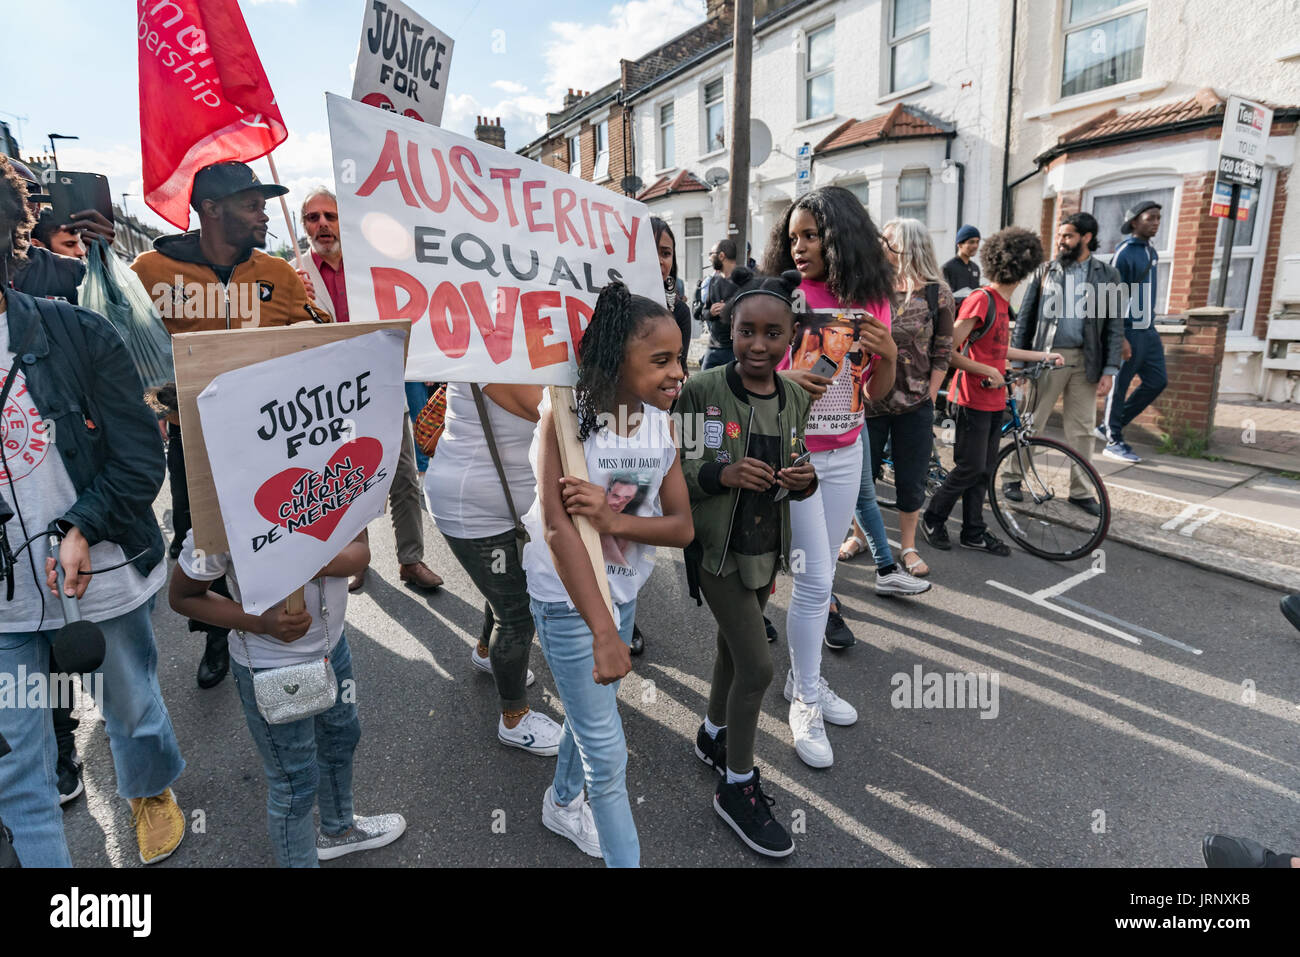 London, UK. 4th Aug, 2017. London, UK. 4th August 2017. People incuding many families and firends of people killed by police march from Broadwater Farm to a rally at Tottenham Police Station remembering the death of Mark Duggan on the sixth anniversary of his killing. The event also remembered the police killing of other members of the Tottenham community - Cynthia Jarrett, Joy Gardner, Roger Sylvester, Mark Duggan and Jermaine Baker and the recent murders of Rashan Charles, Darren Cumberbatch and Edson Da Costa. Led by Stafford Scott, there was poetry, a minute of silence and speeches from - Stock Image